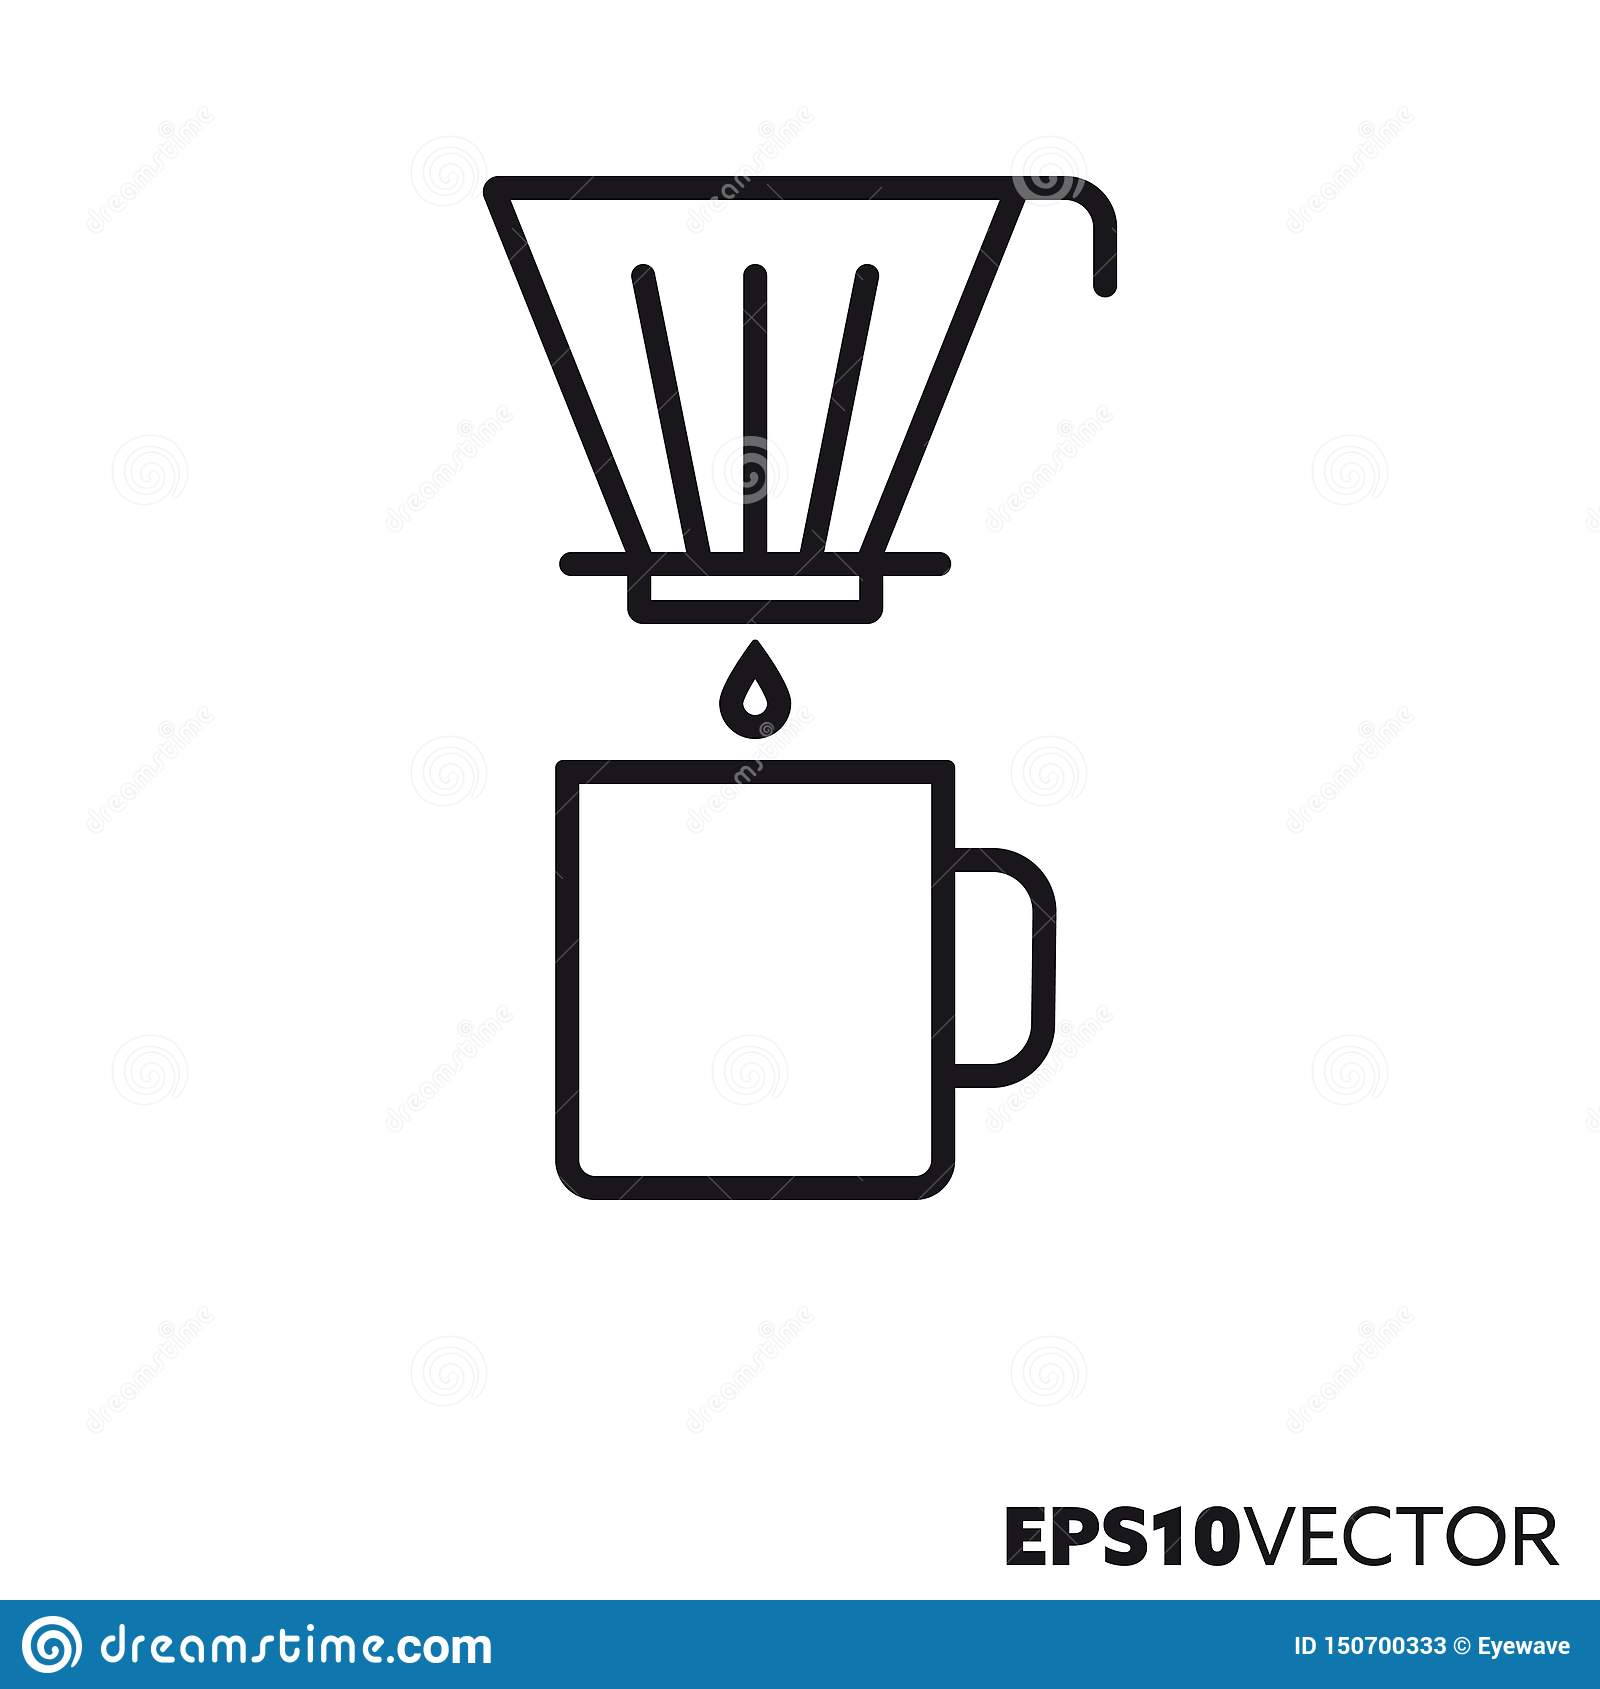 Drip Coffee Filter Stock Illustrations 774 Drip Coffee Filter Stock Illustrations Vectors Clipart Dreamstime